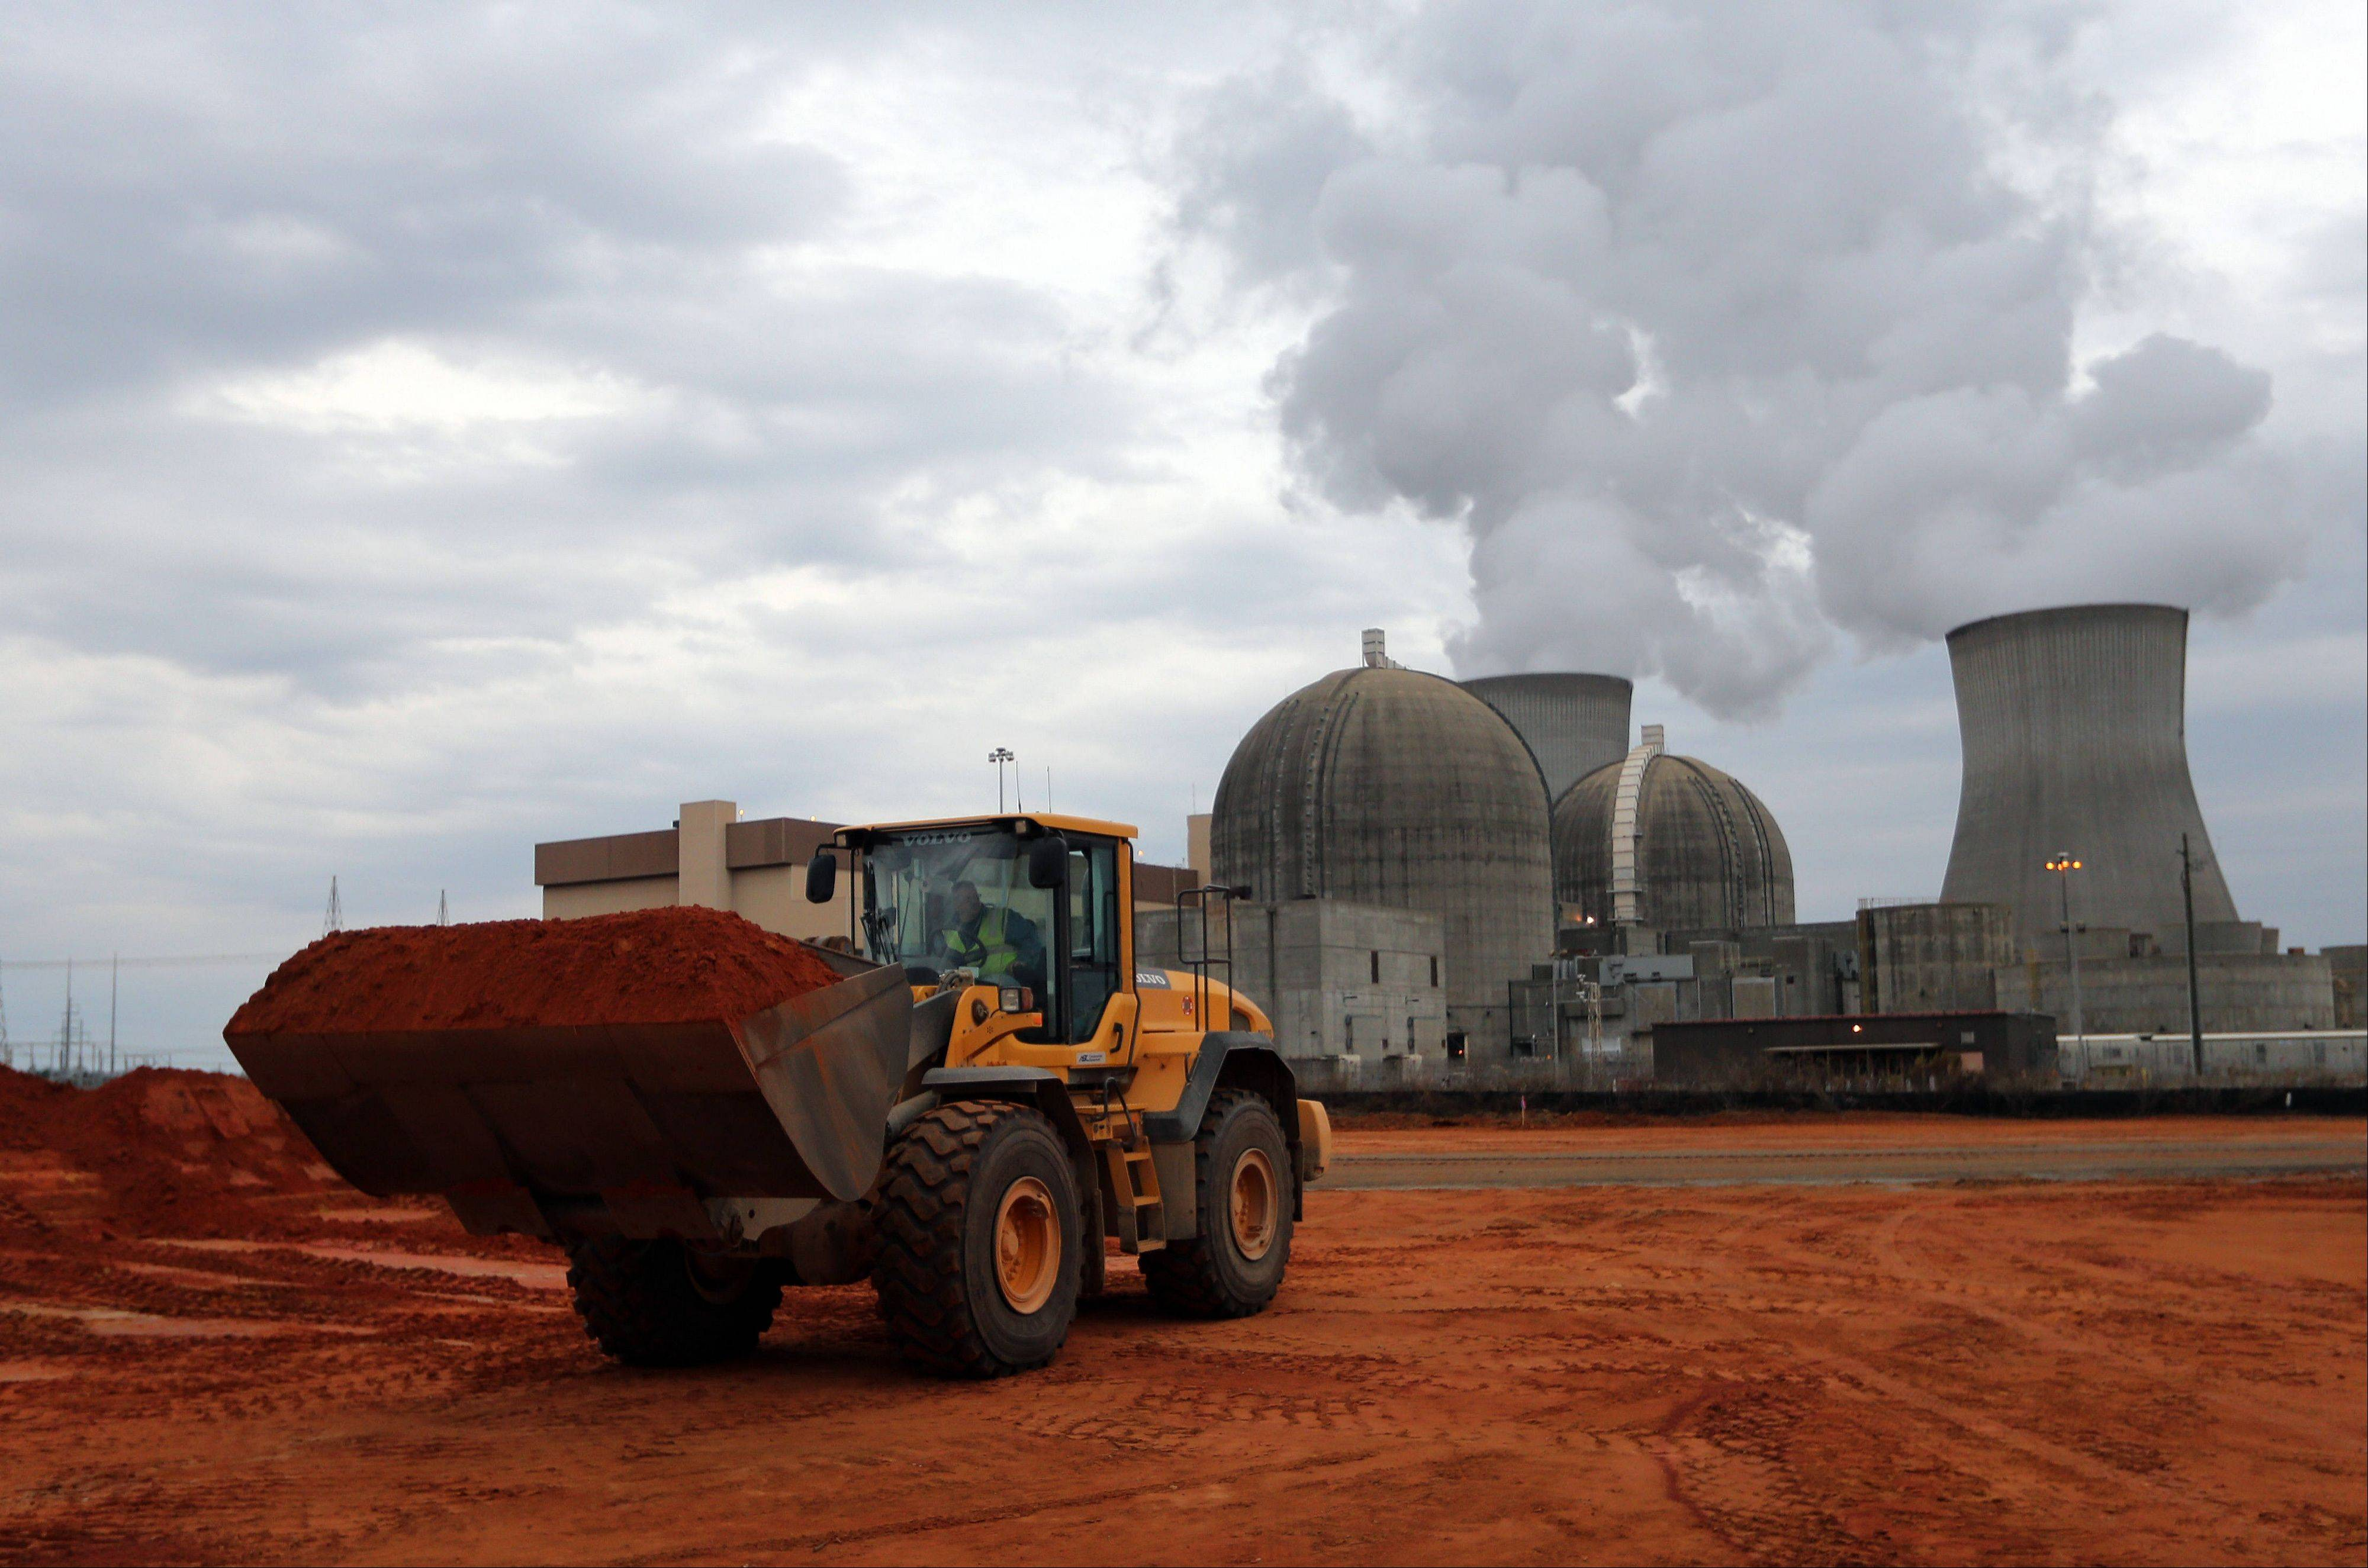 An earth mover works on a new nuclear reactor at the Plant Vogtle nuclear power plant in Augusta, Ga. One of the plant's existing reactors is shown in the background.